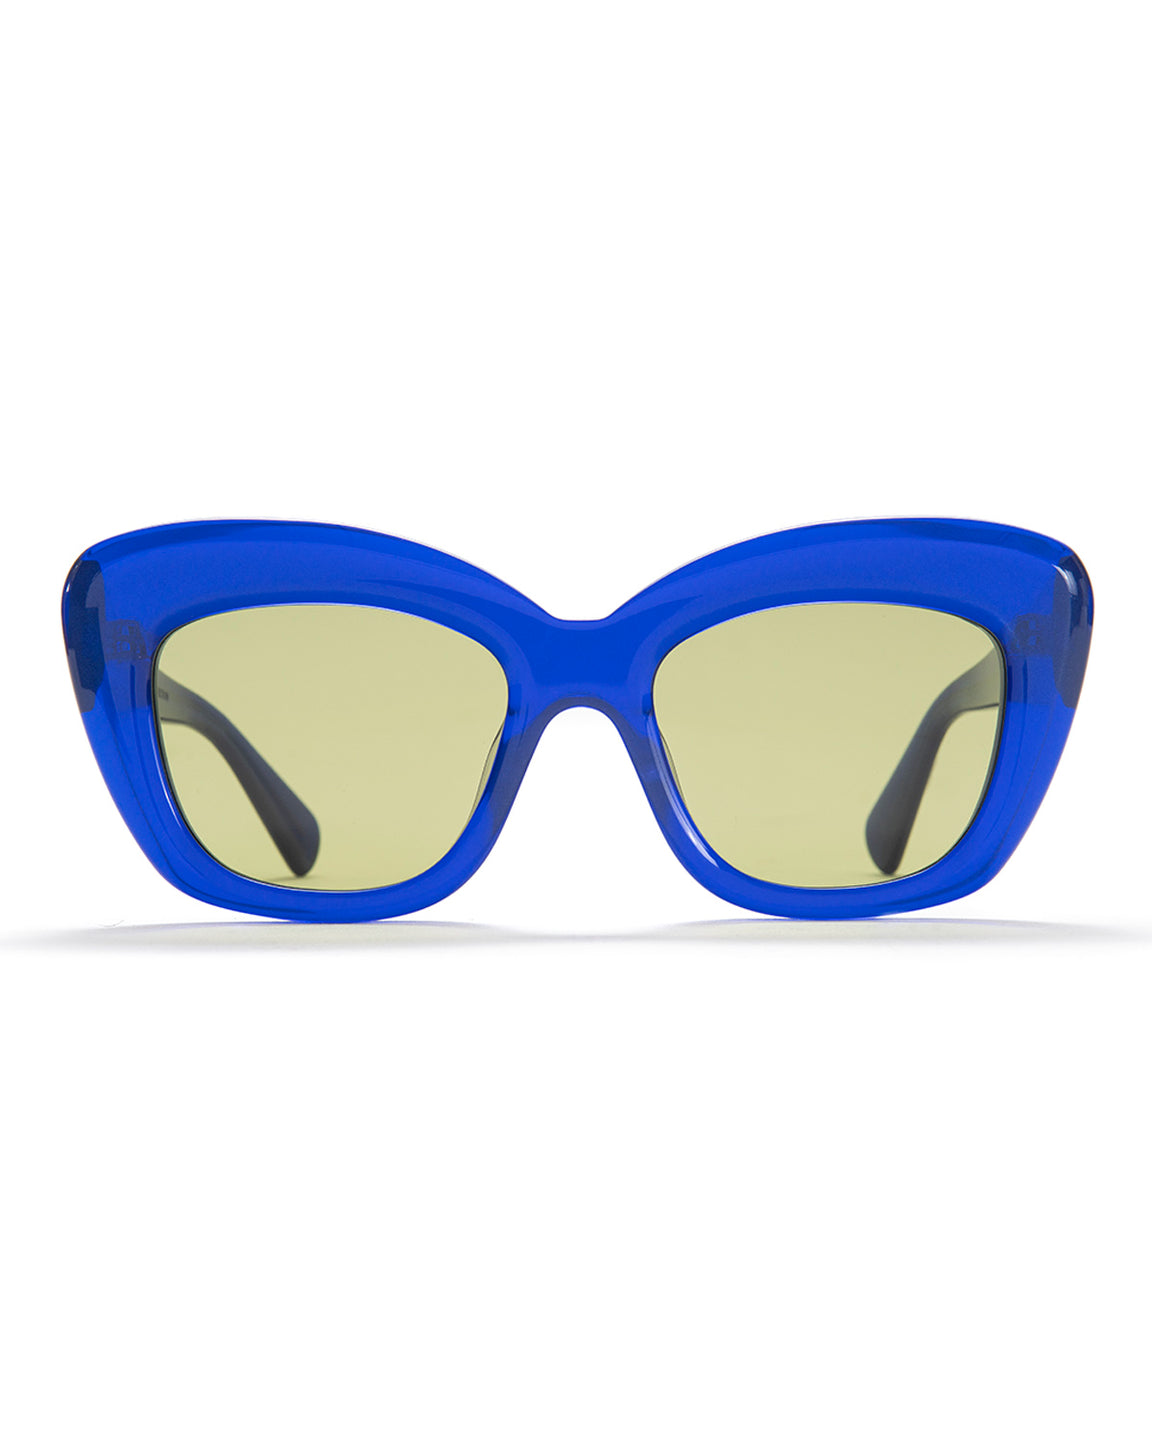 Chibi Sunglasses - Translucent Blue - Brain Dead